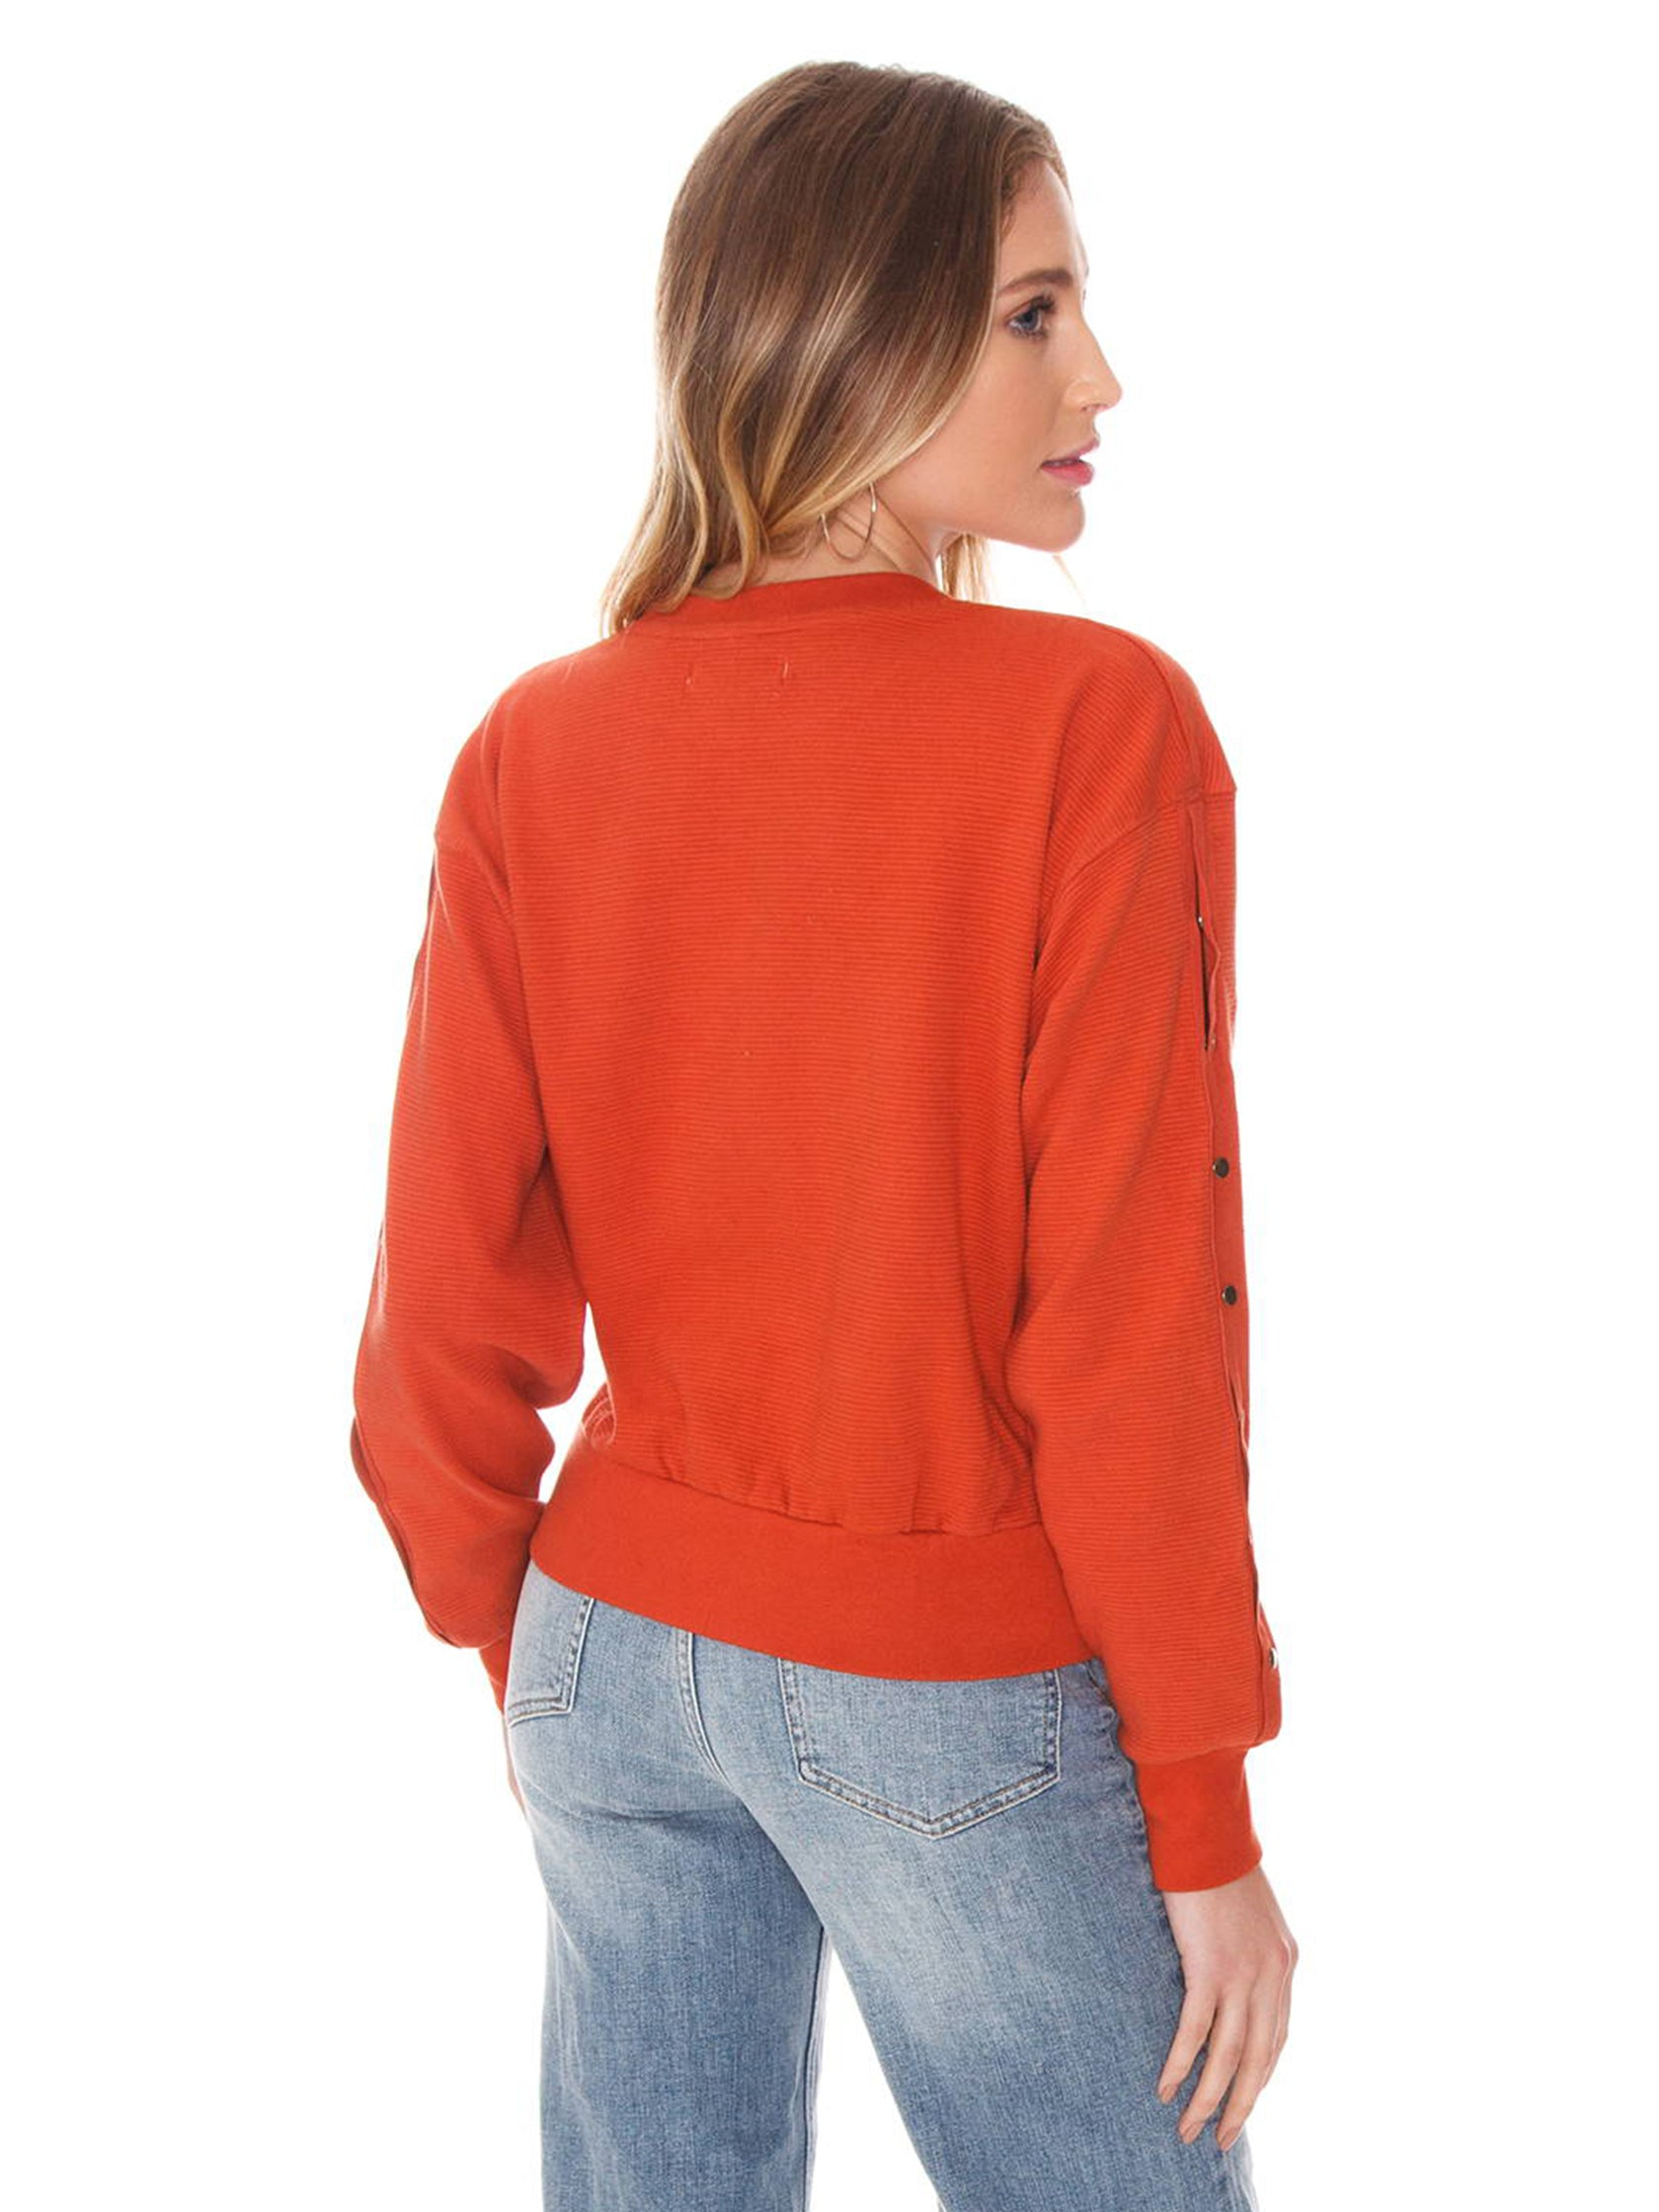 Women outfit in a sweater rental from FLETCH called Filomena Sweatshirt